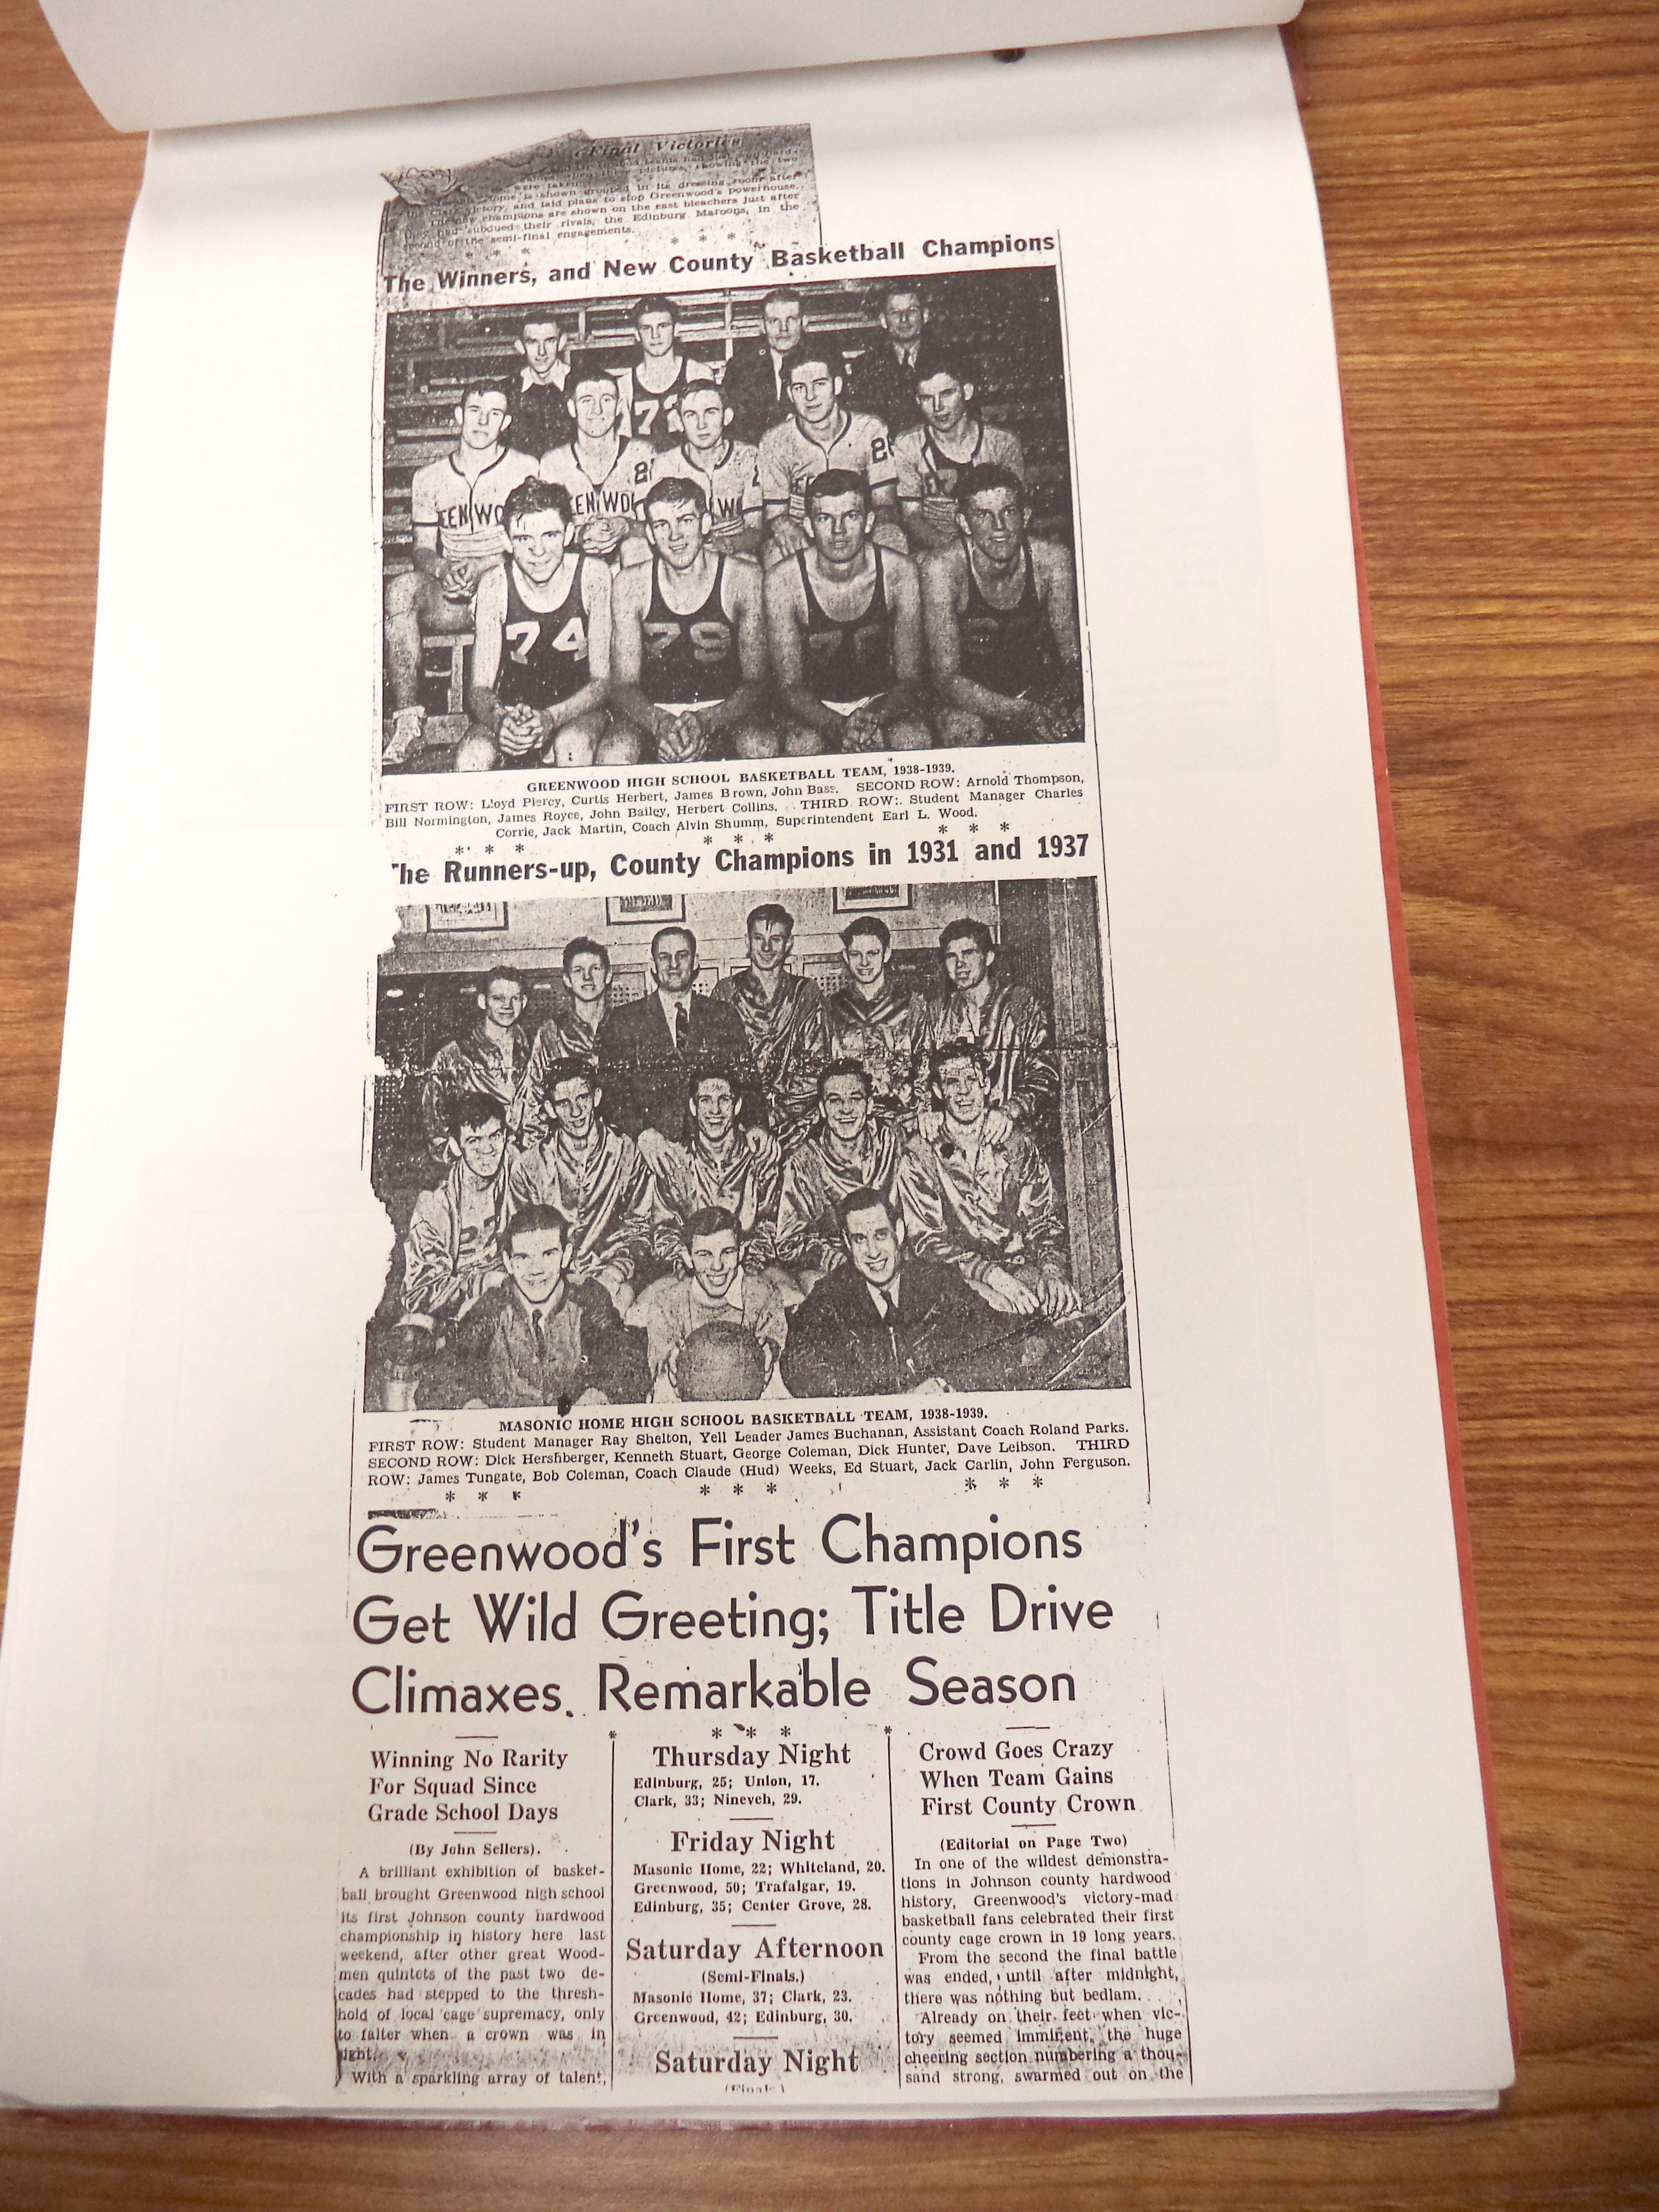 Scrapbook on display in the Johnson County Museum library containing